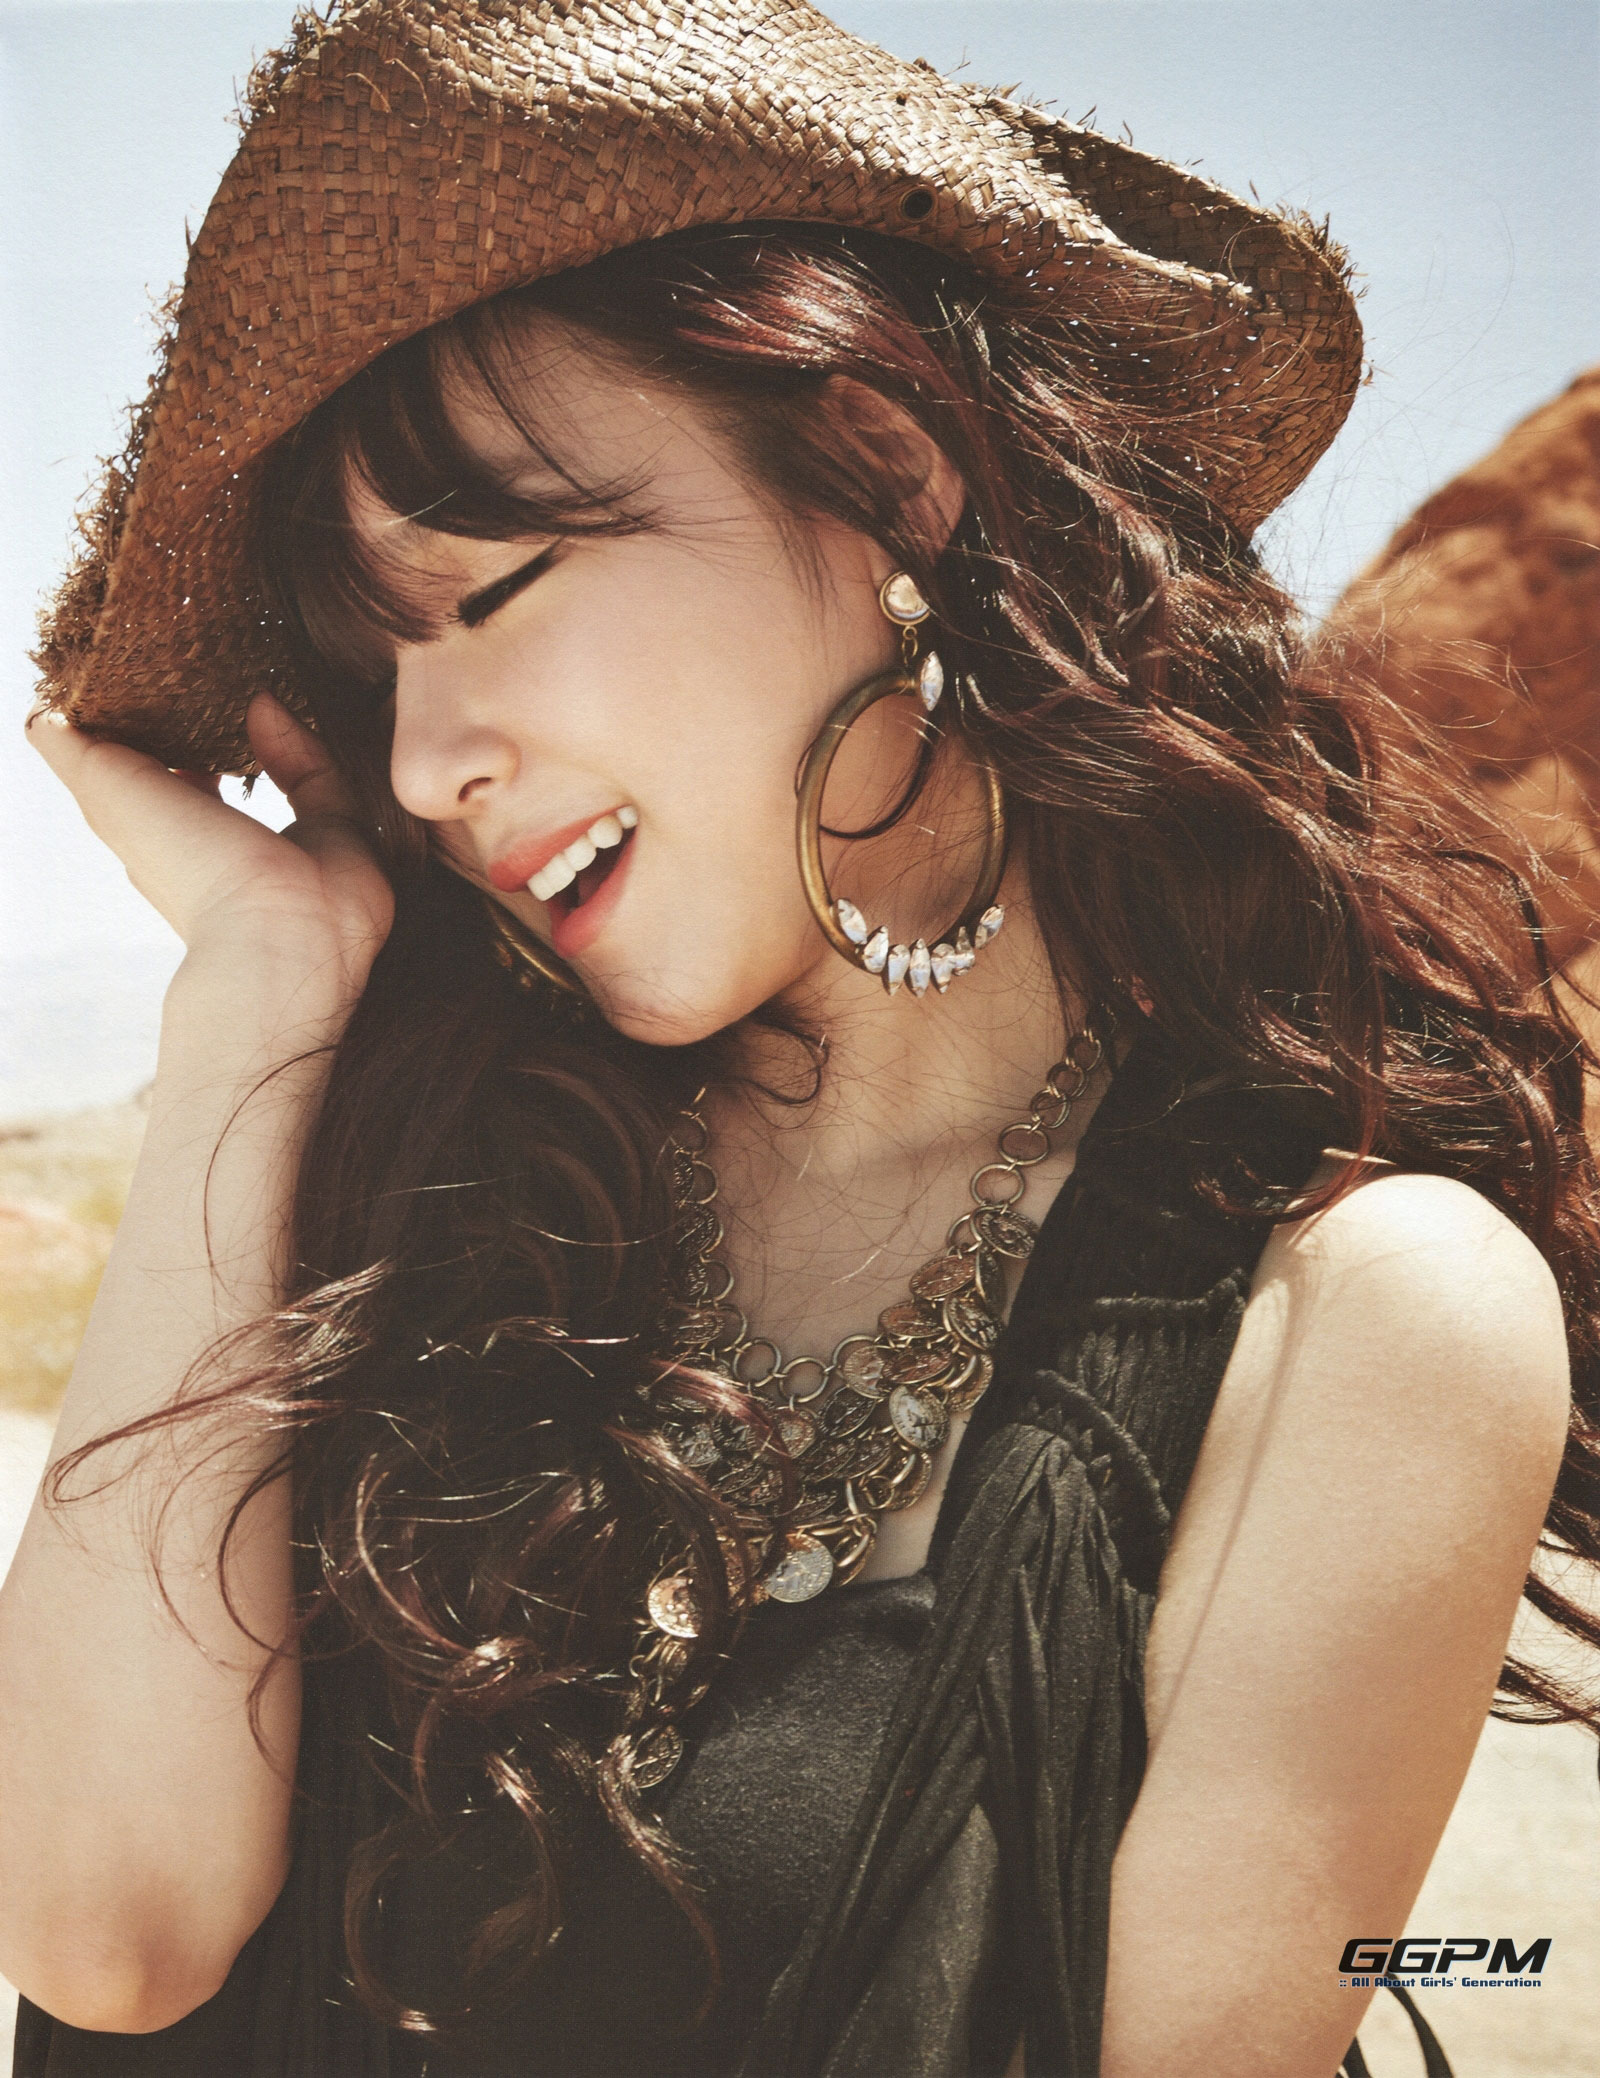 Girls Generation SNSD Tiffany in Las Vegas